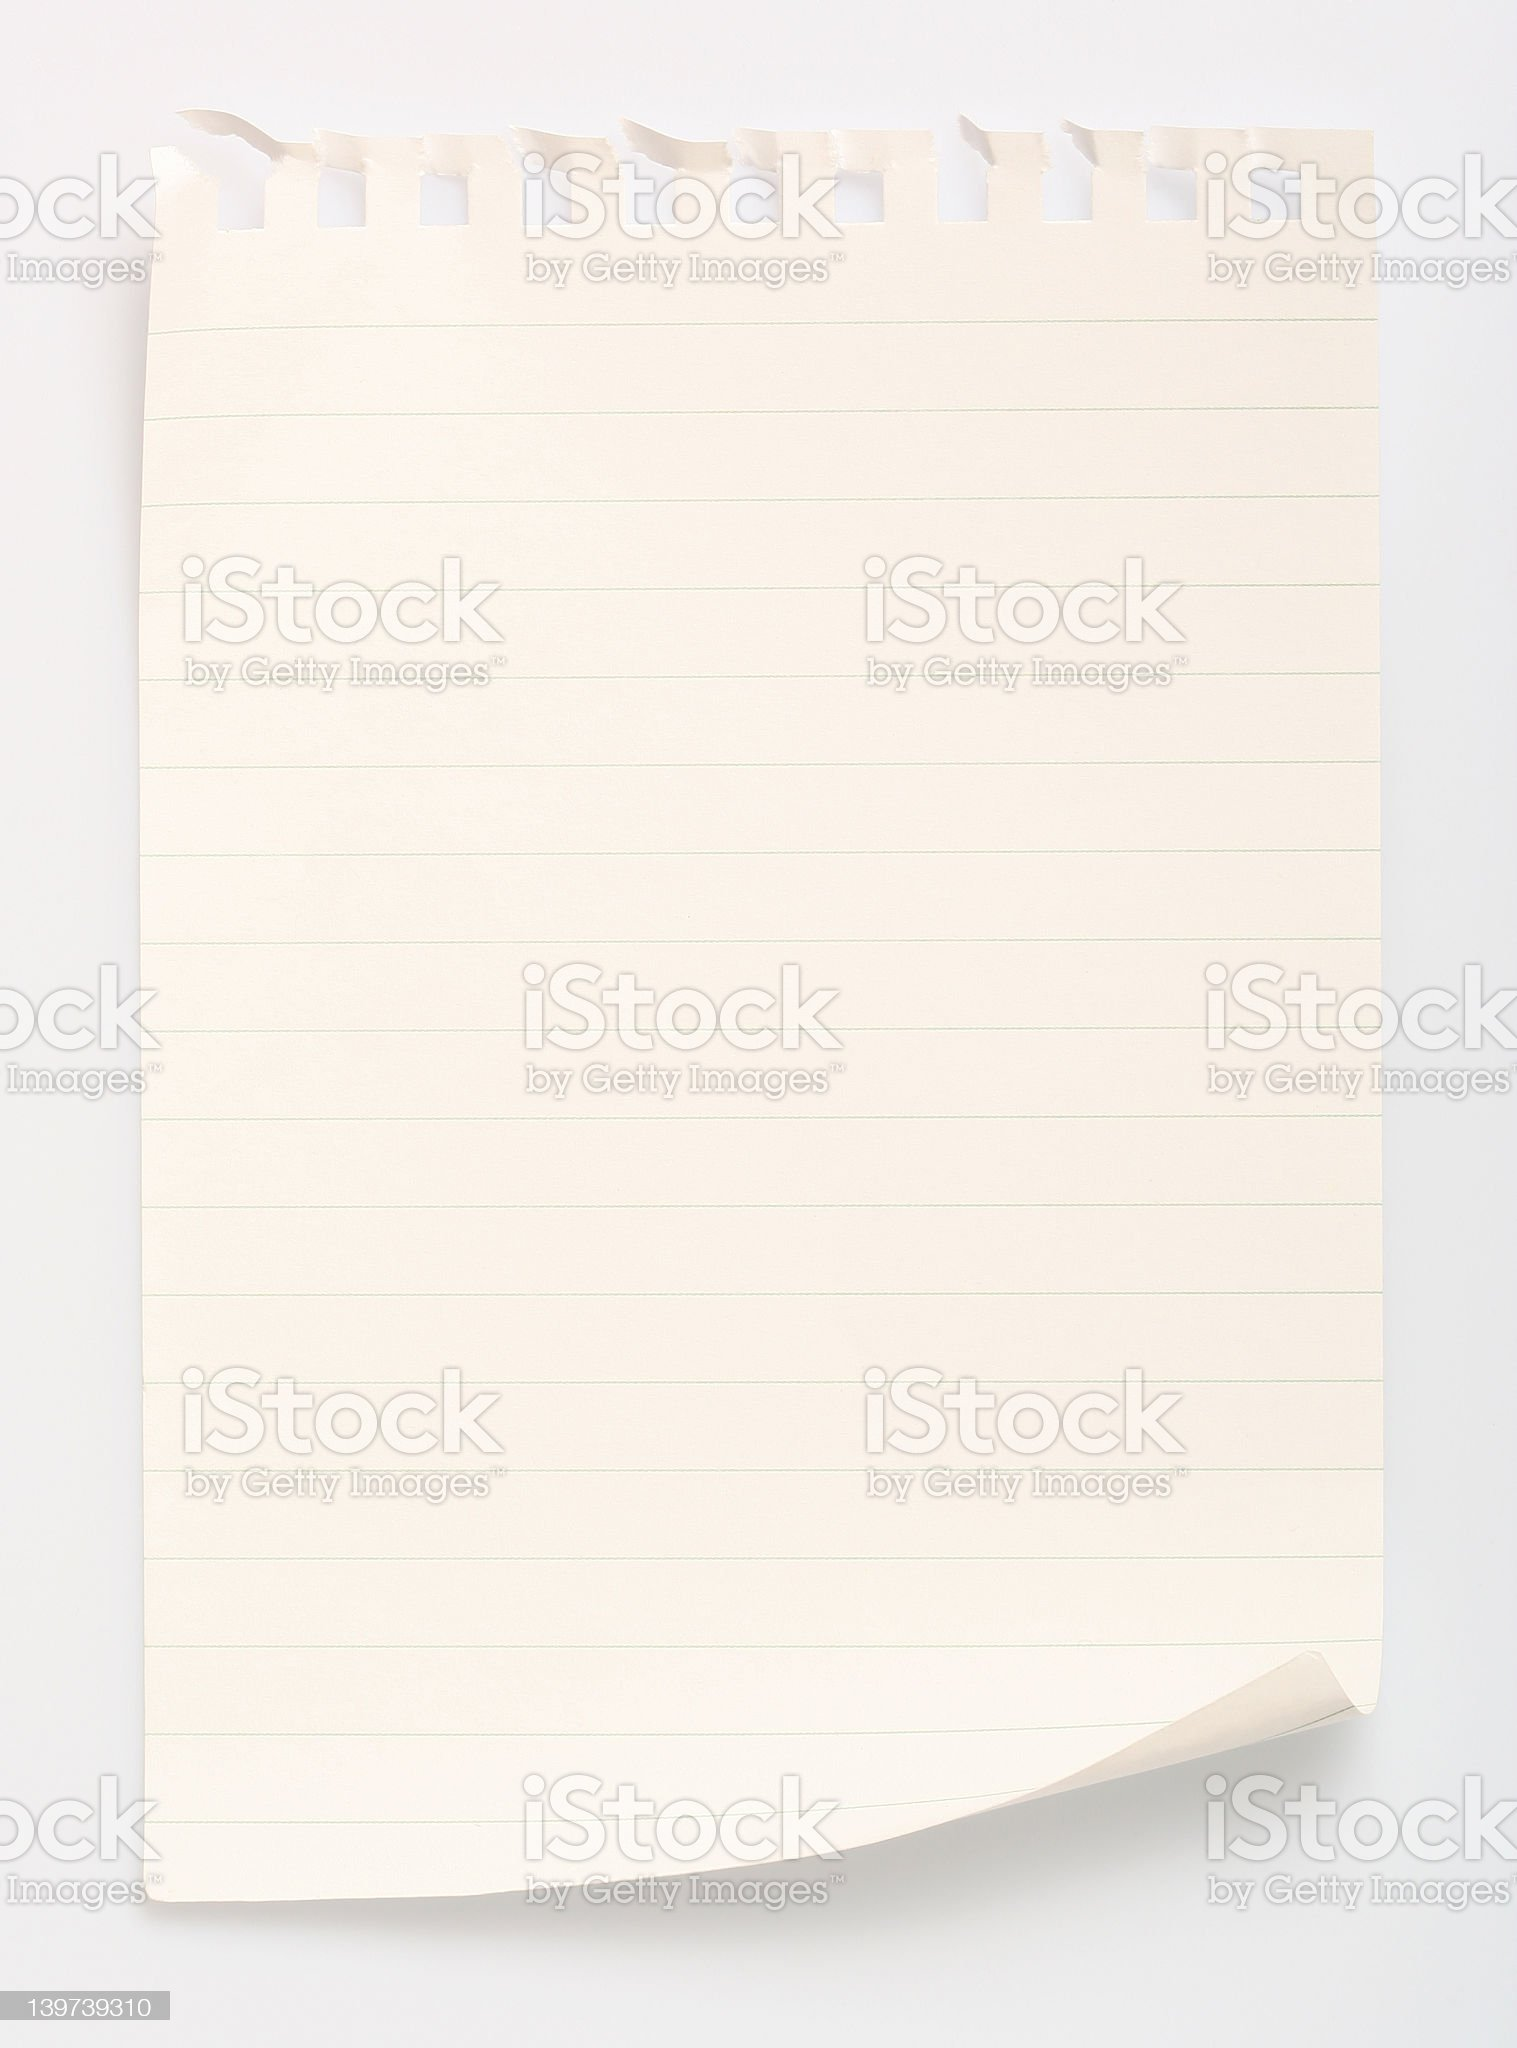 Lined notebook paper ripped from a spiral notebook royalty-free stock photo